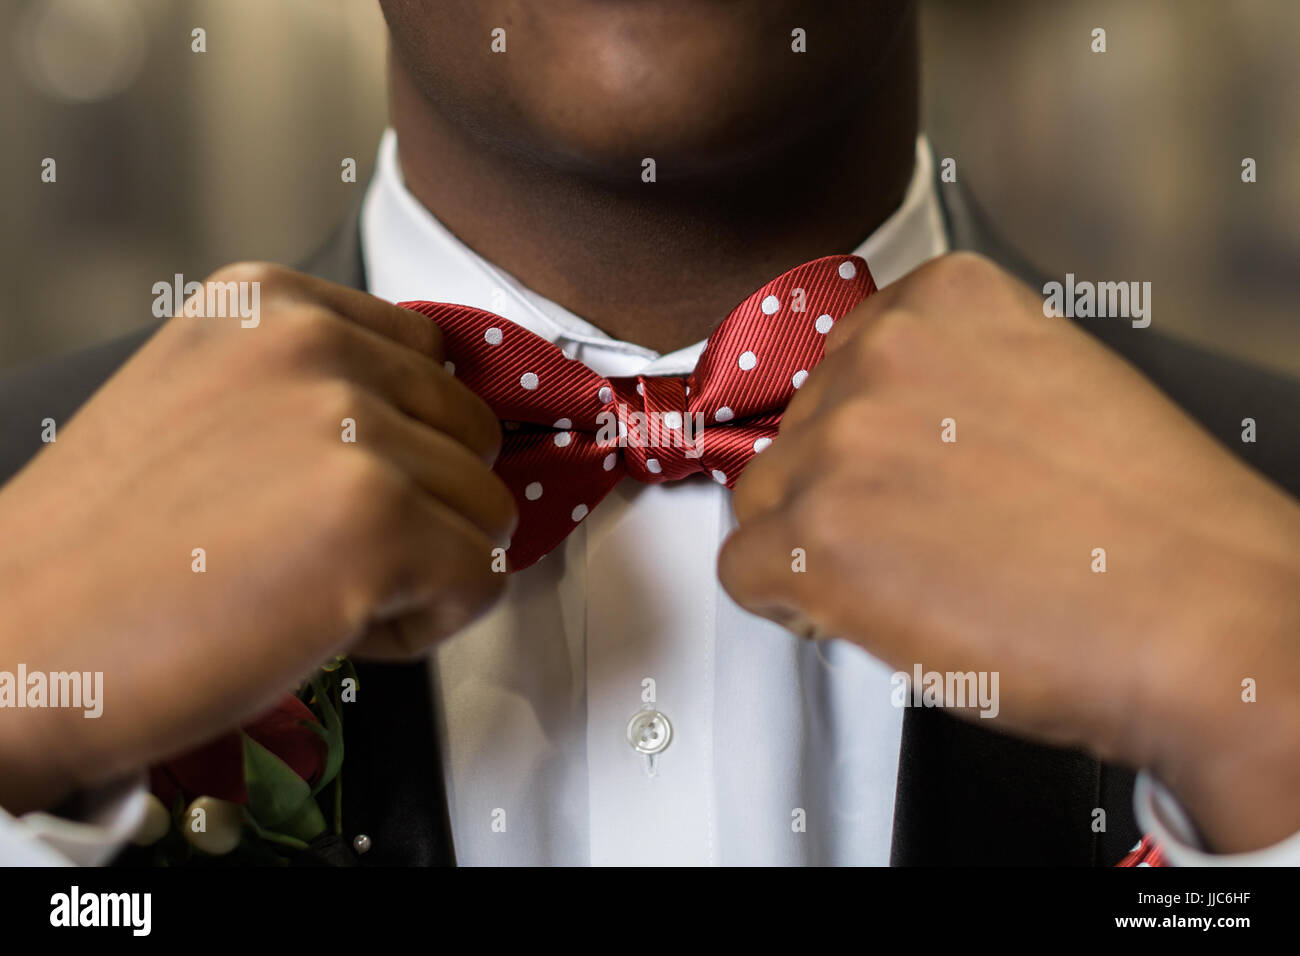 c4dcb26683b3 One teen boy adjusts polka dotted red bow tie. Getting dressed and ready  for formal high school prom dance.